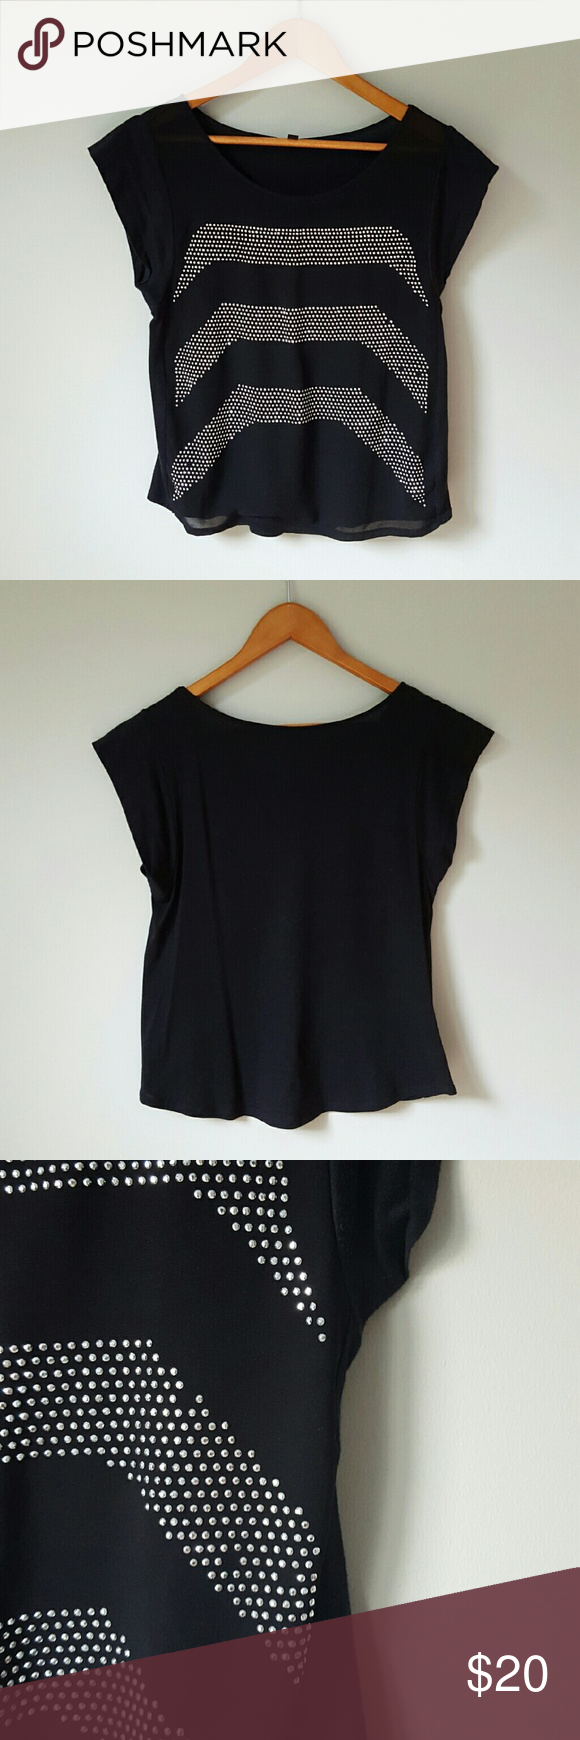 {Express} Black Beaded Top -Front: 100% polyester  -Back: 60% cotton, 40% modal  -Front is chiffon-like fabric with lining underneath  -Back is soft cotton fabric  -A few missing beads as pictured  📷 by @alinasher Express Tops